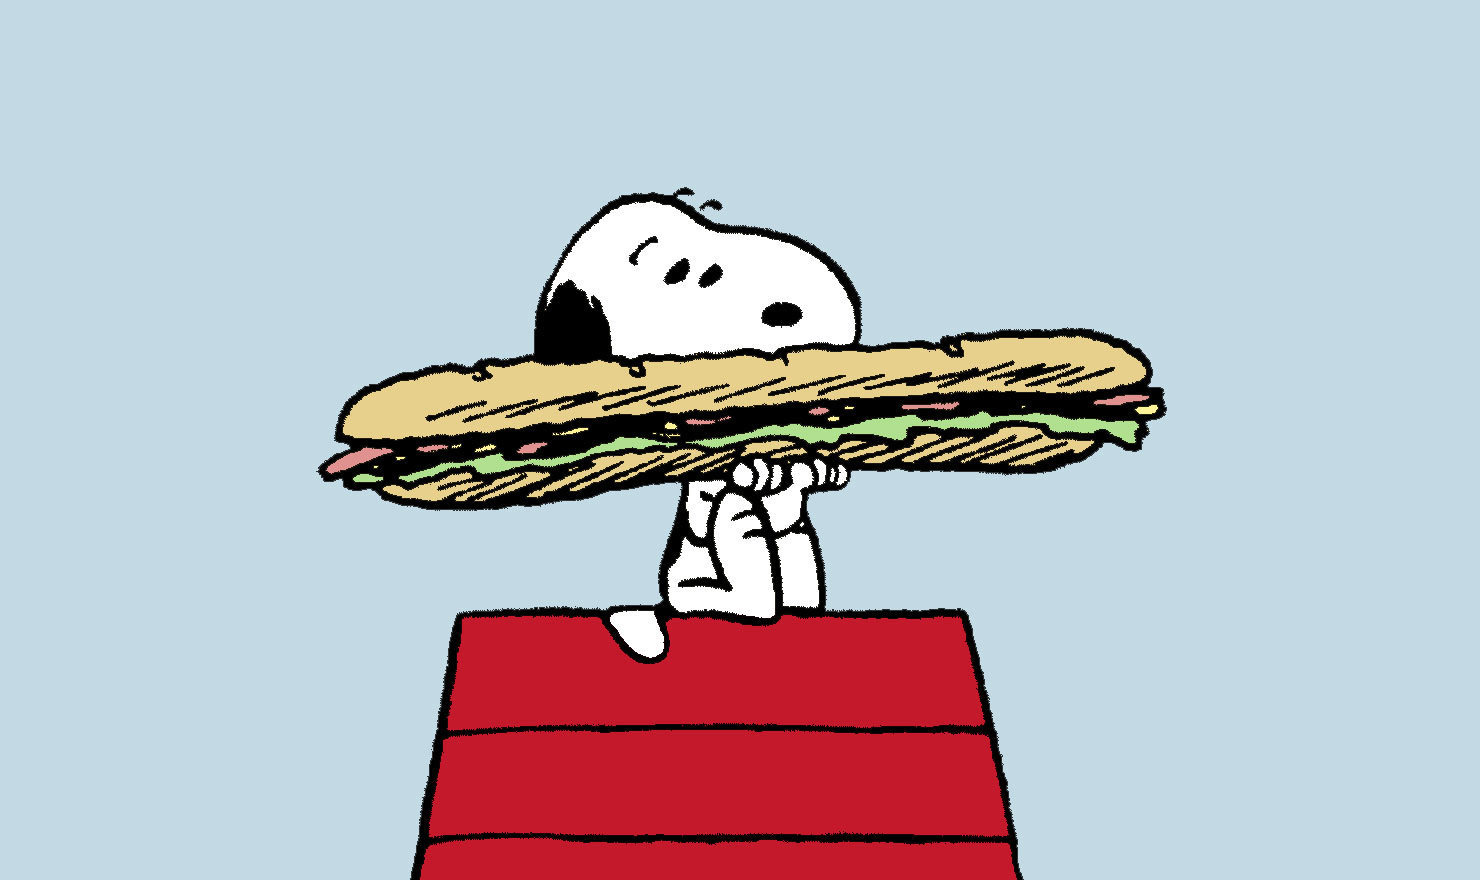 Celebrate Sandwich Day With A 'Peanuts' Party Sub